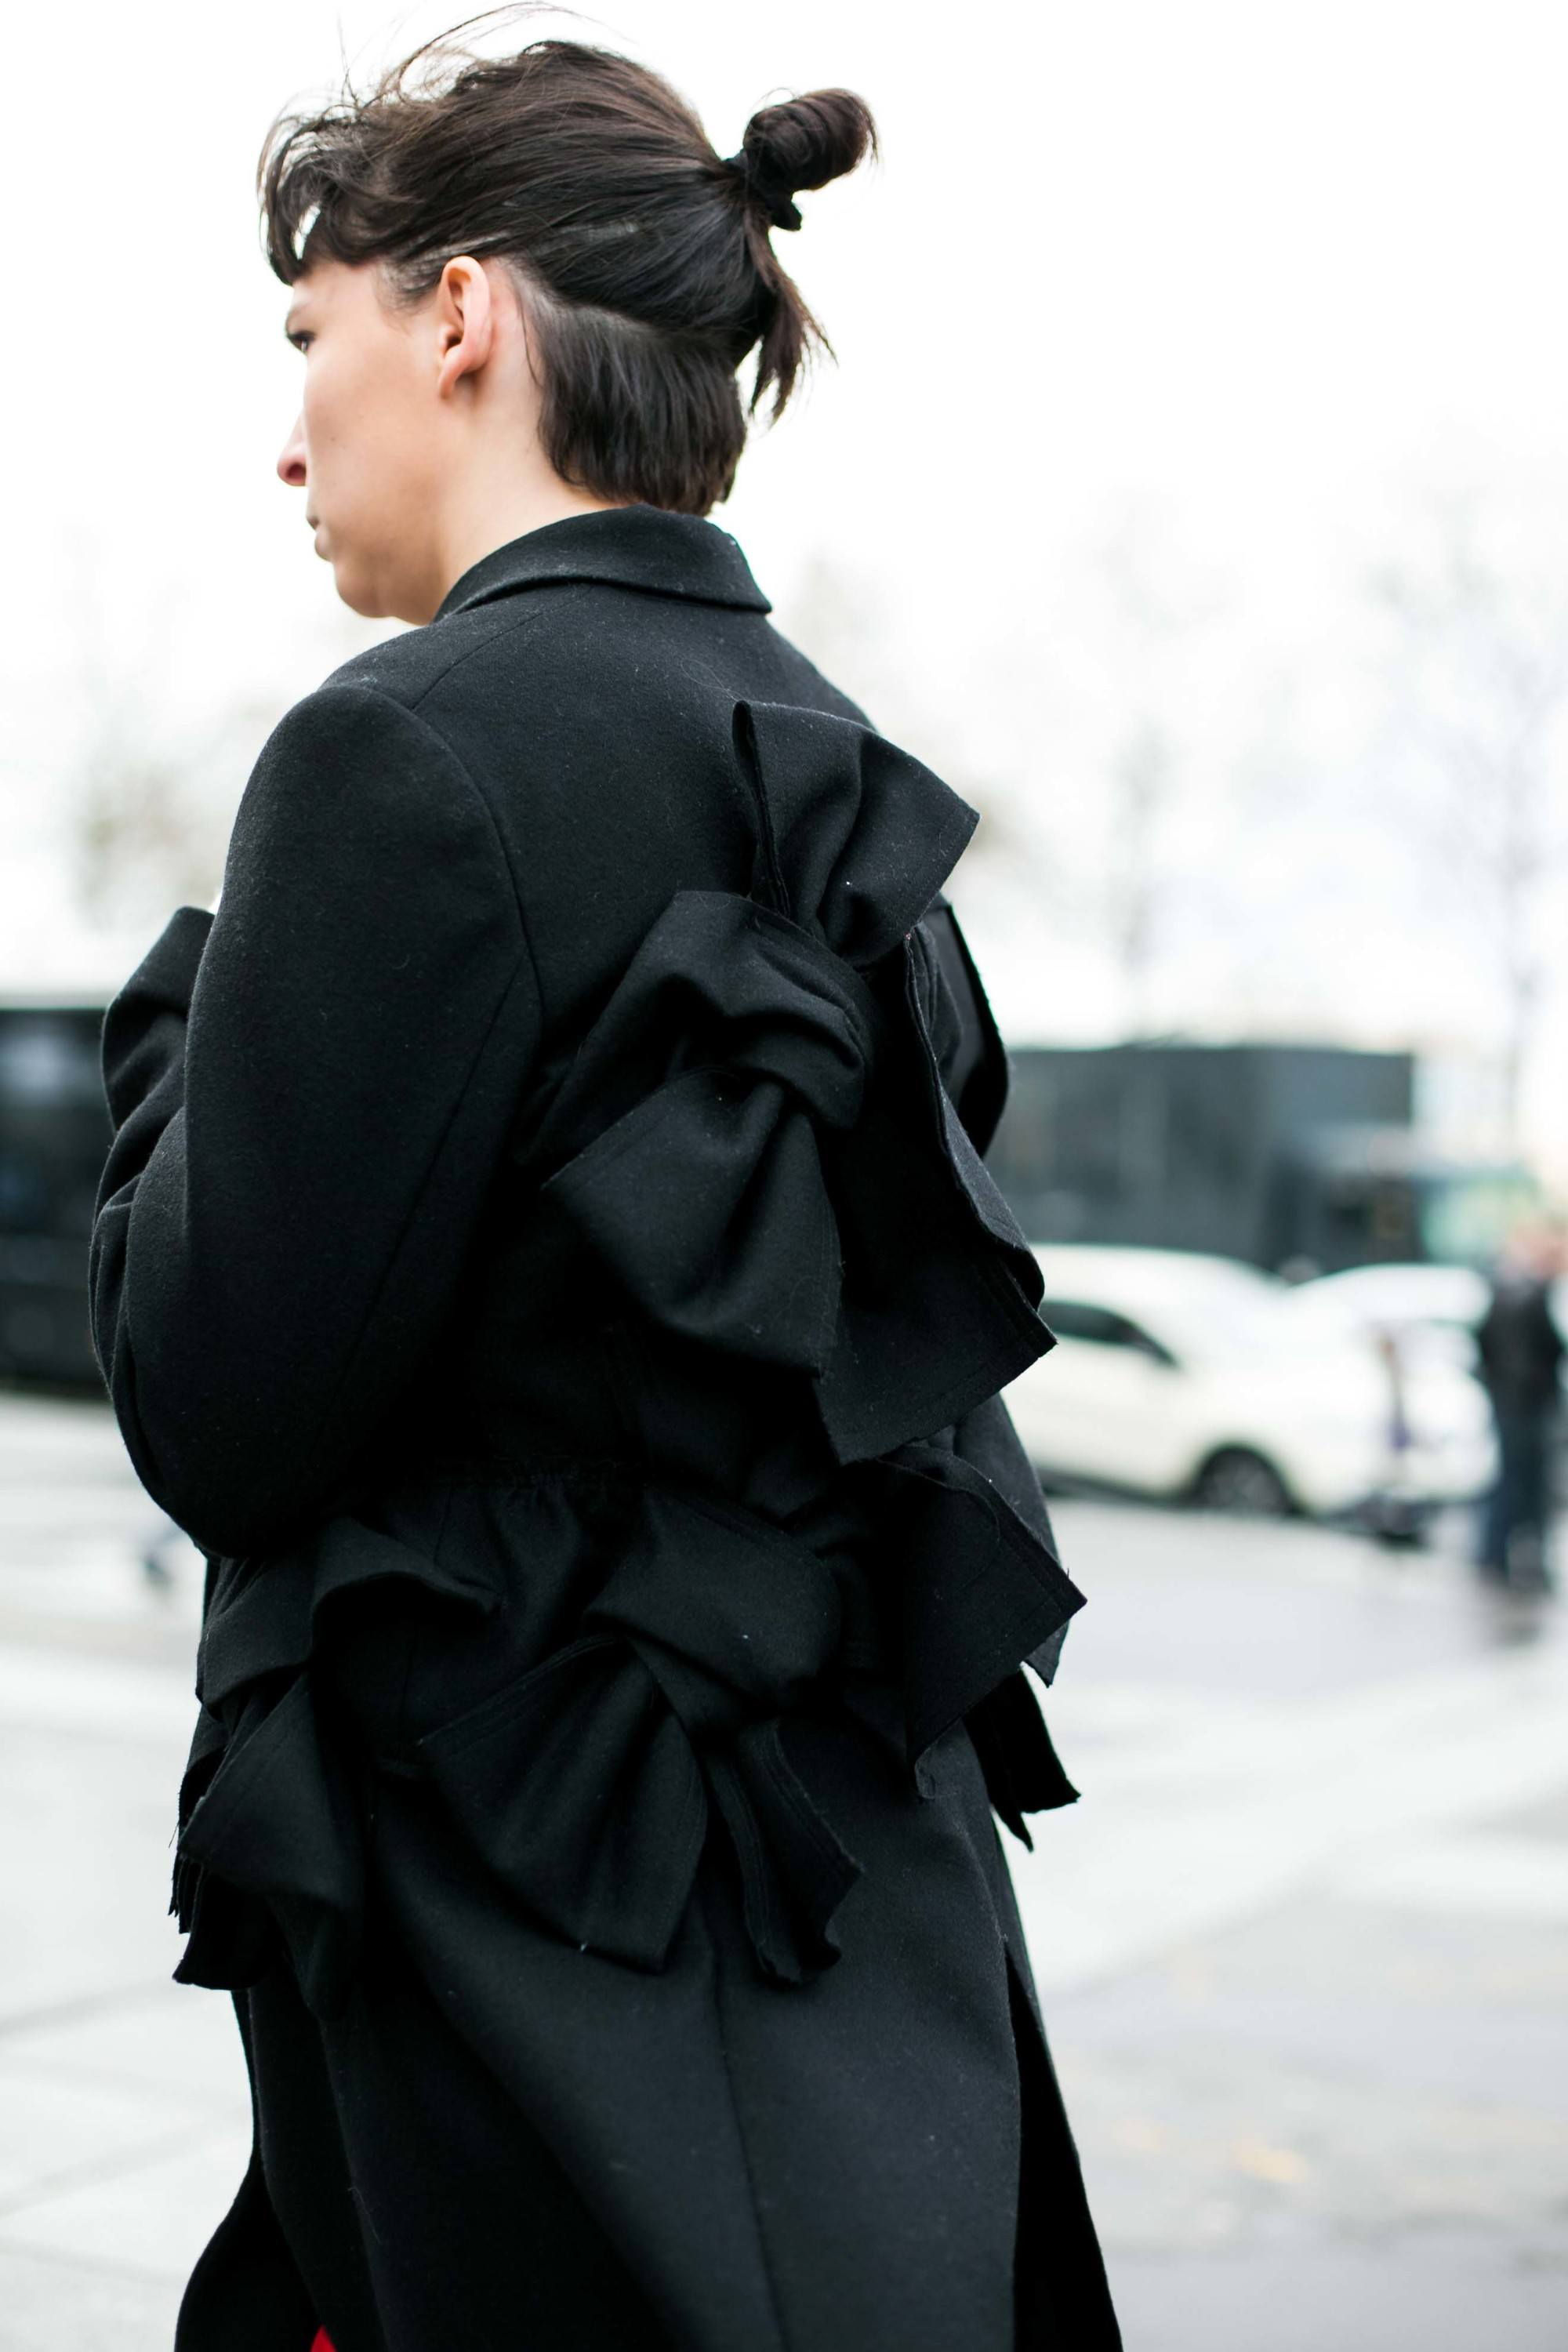 Gym hairstyles for short hair: Street style shot of the back of a brunette model with a half-up bun hairstyle, wearing all black